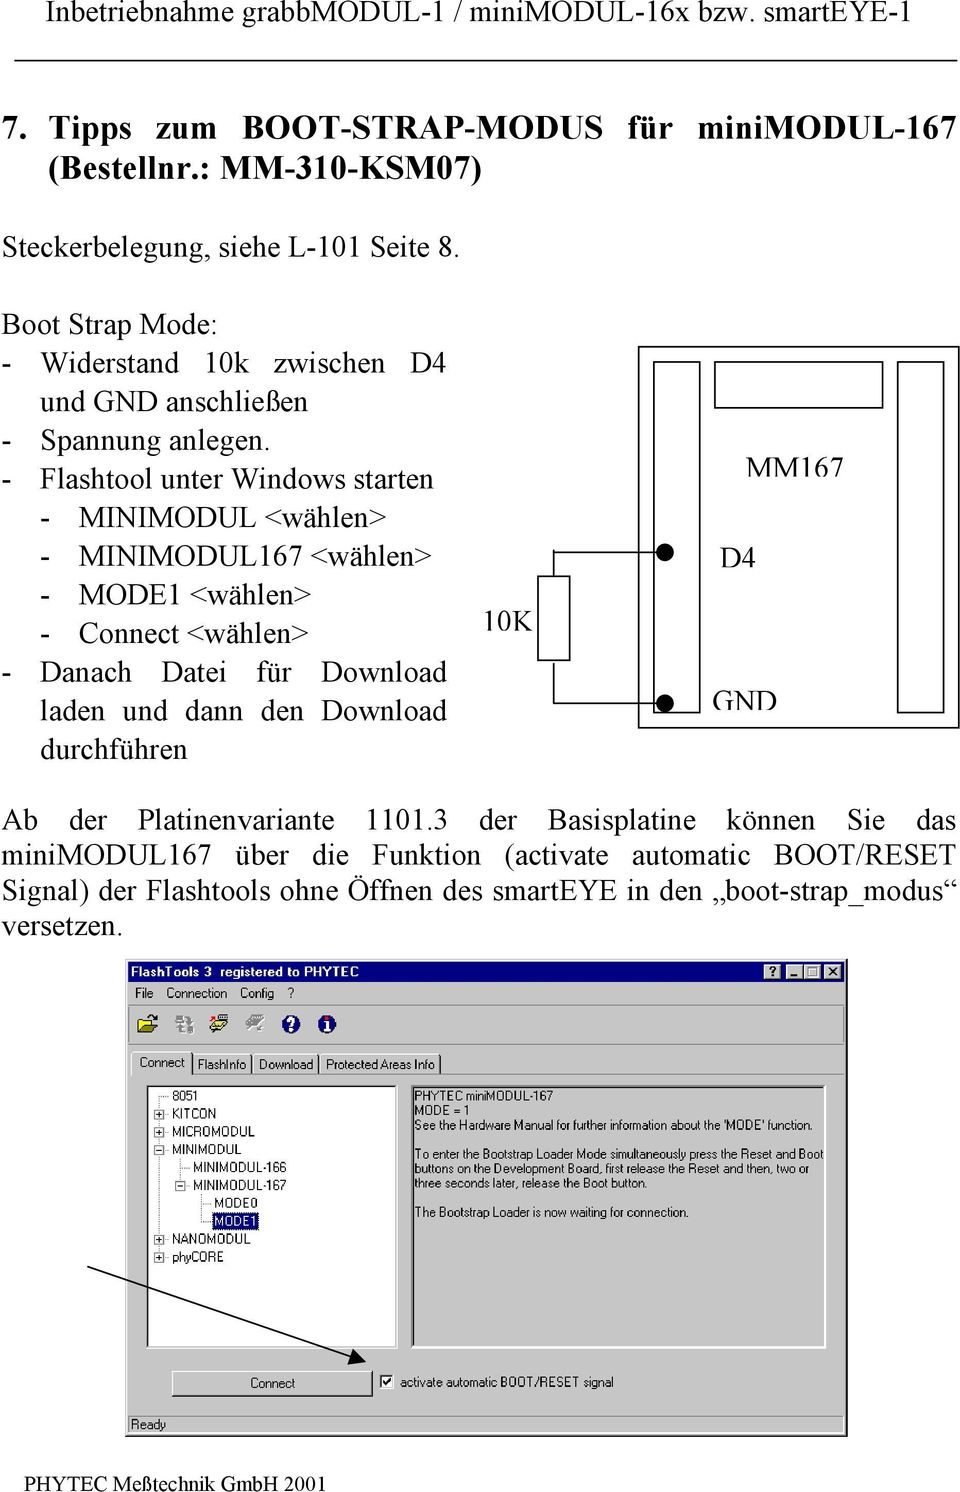 - Flashtool unter Windows starten - MINIMODUL <wählen> - MINIMODUL167 <wählen> - MODE1 <wählen> - Connect <wählen> - Danach Datei für Download laden